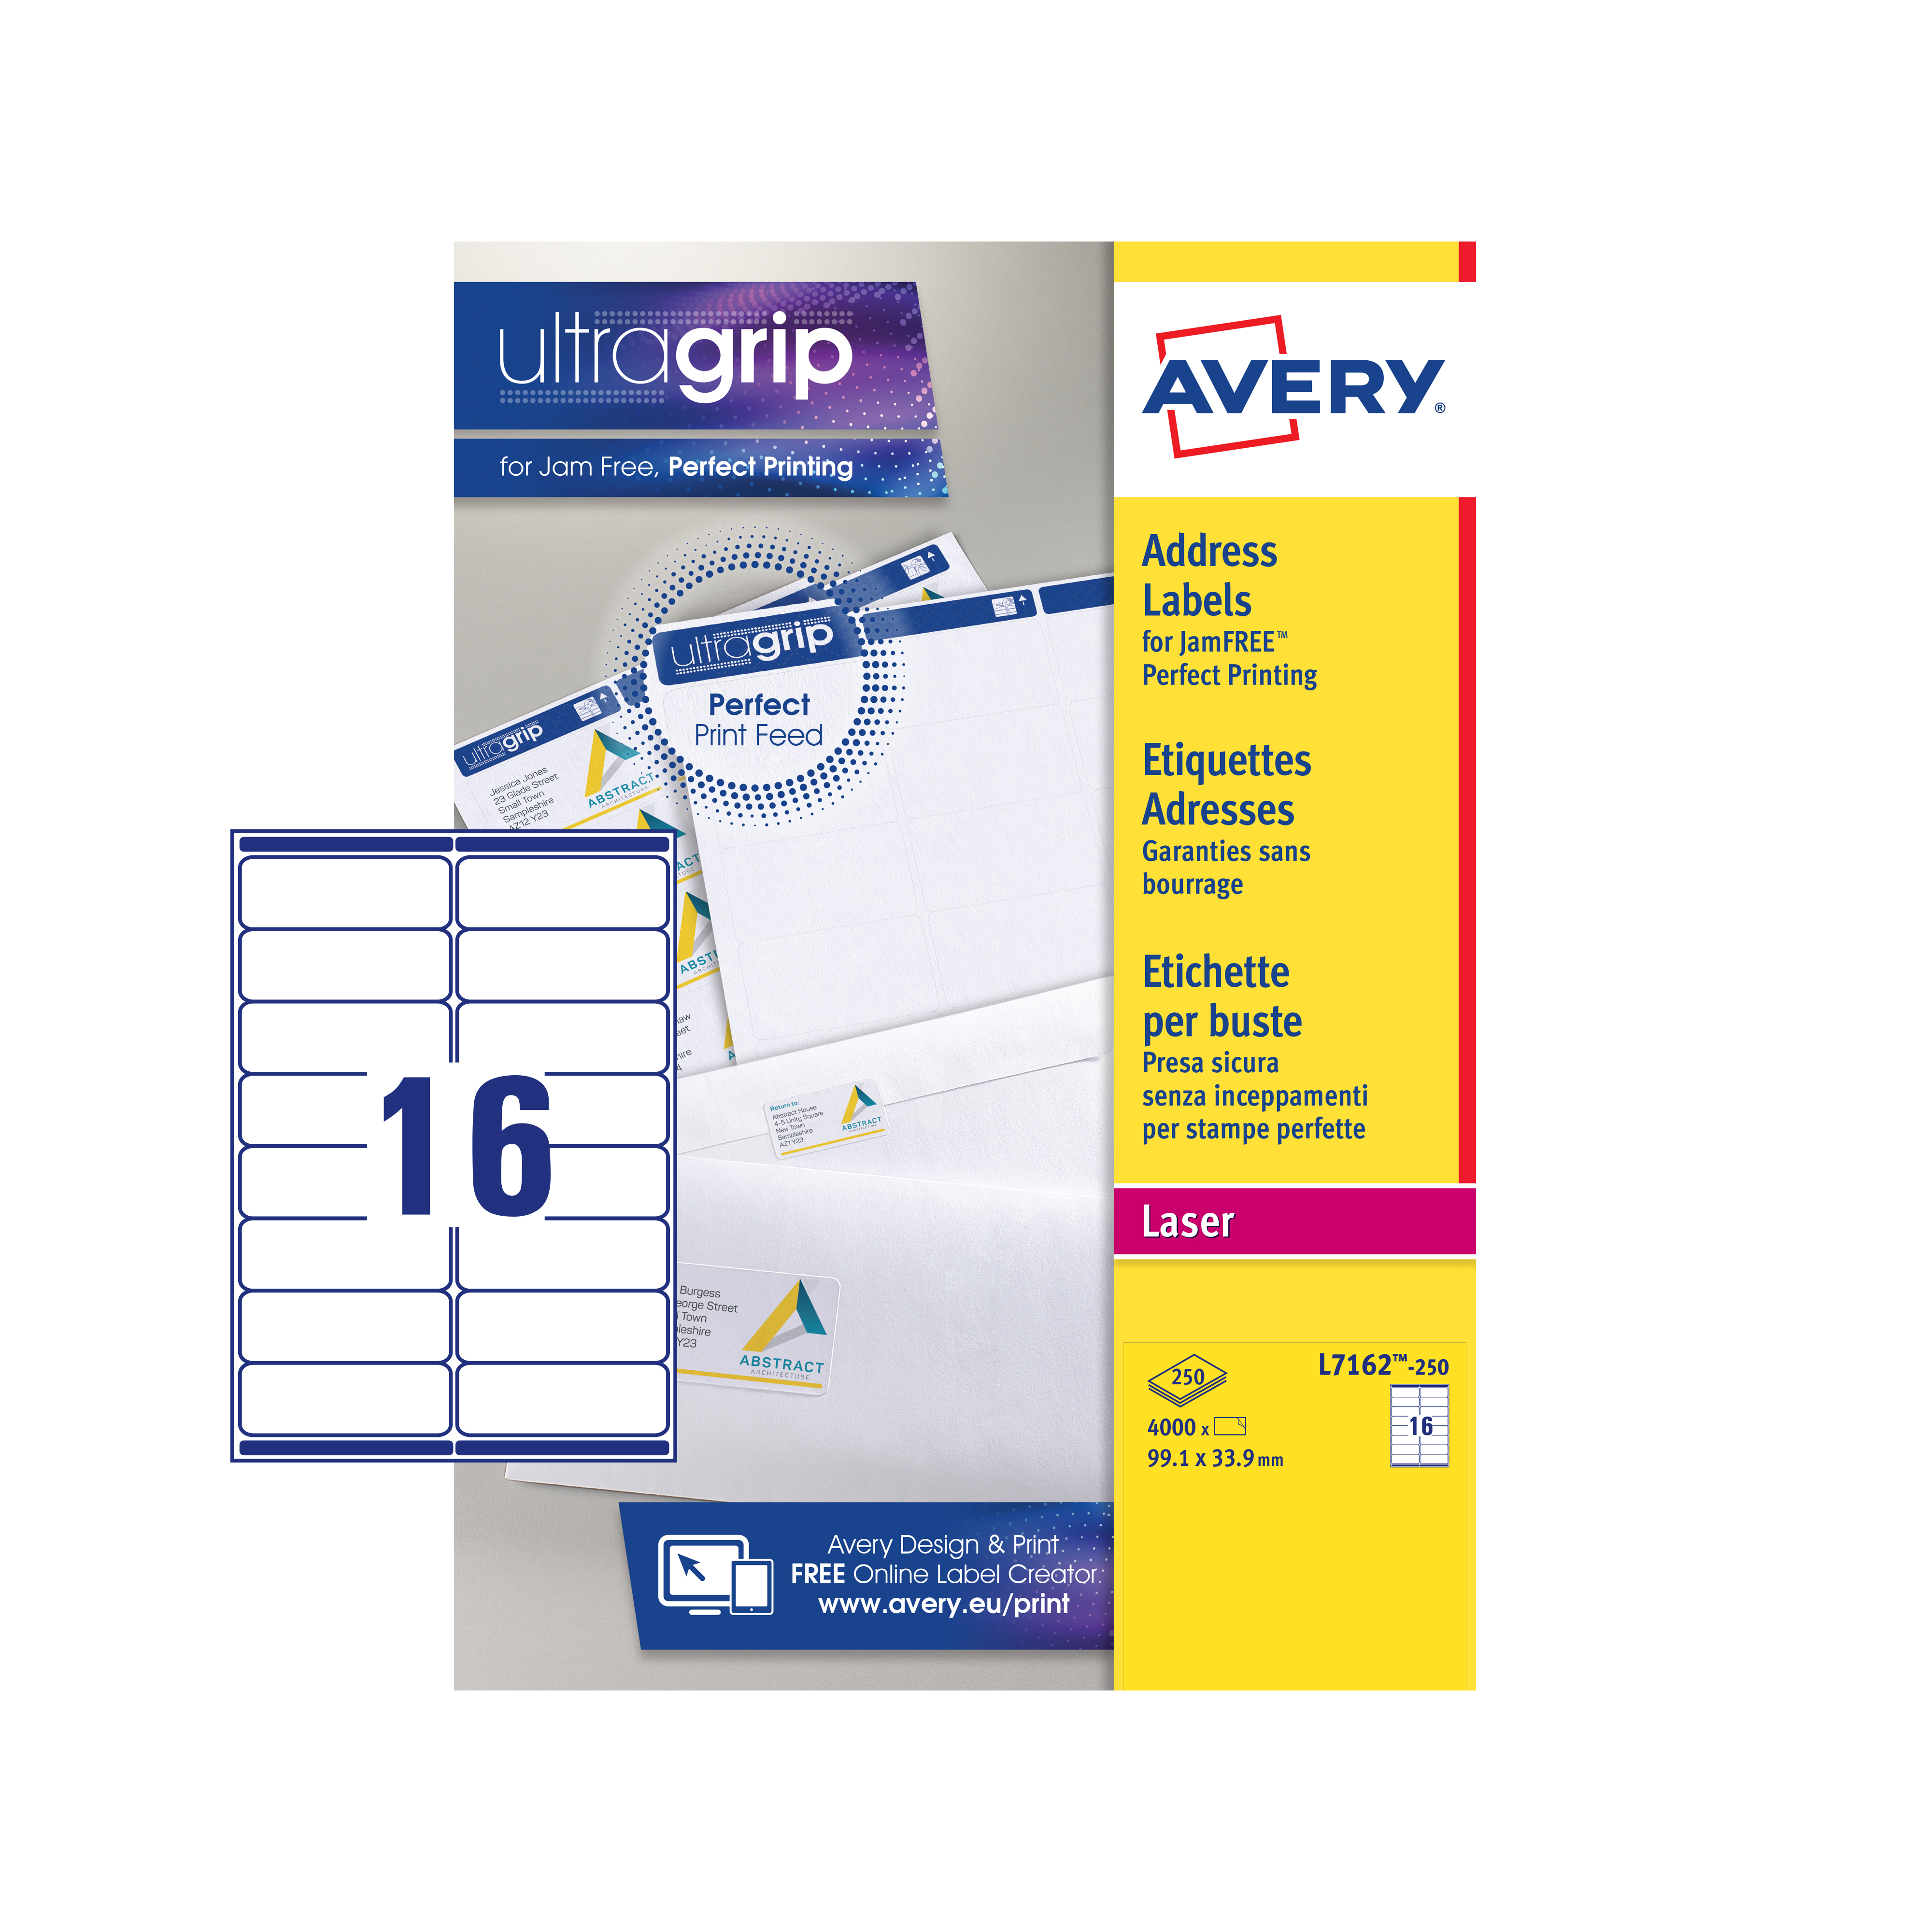 Avery Addressing Labels Laser Jam-free 16 per Sheet 99.1x33.9mm White Ref L7162-250 4000 Labels